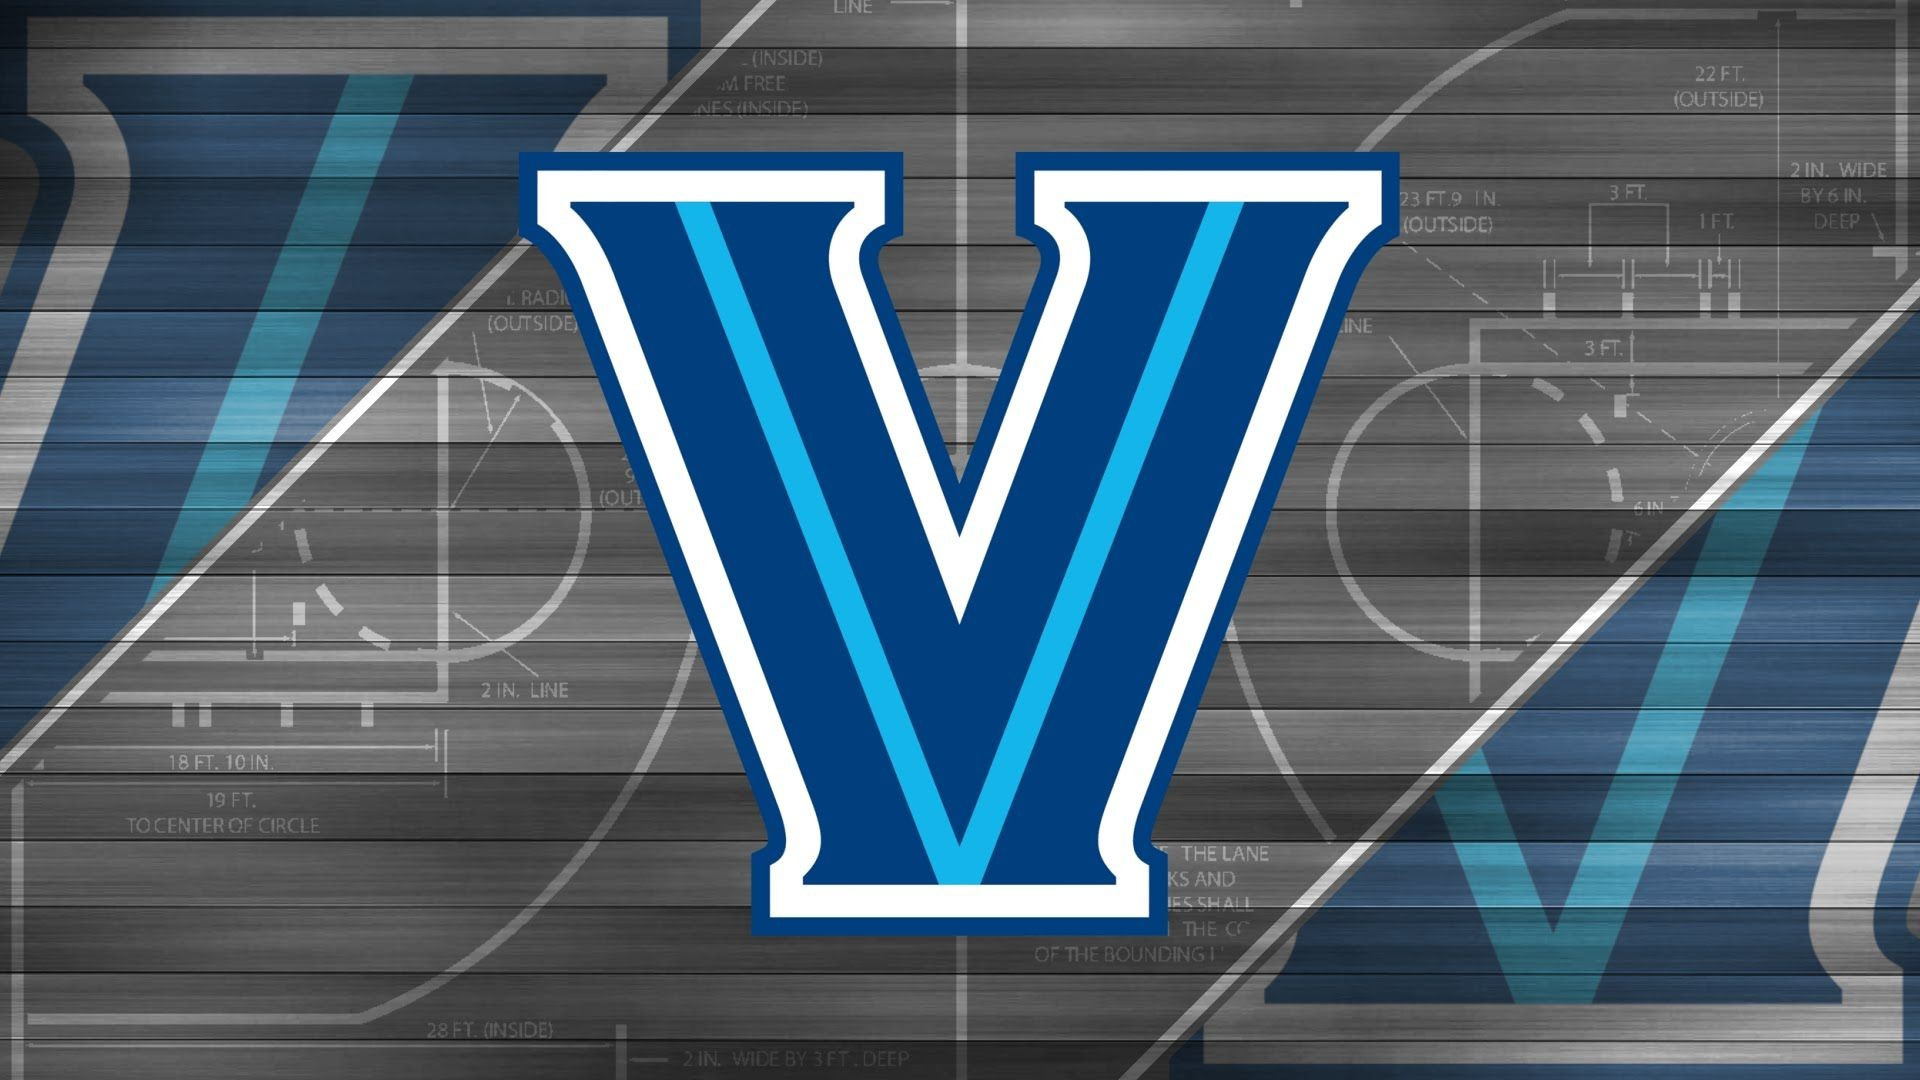 1920x1080 Backgrounds For Villanova Logo Without Background | www .